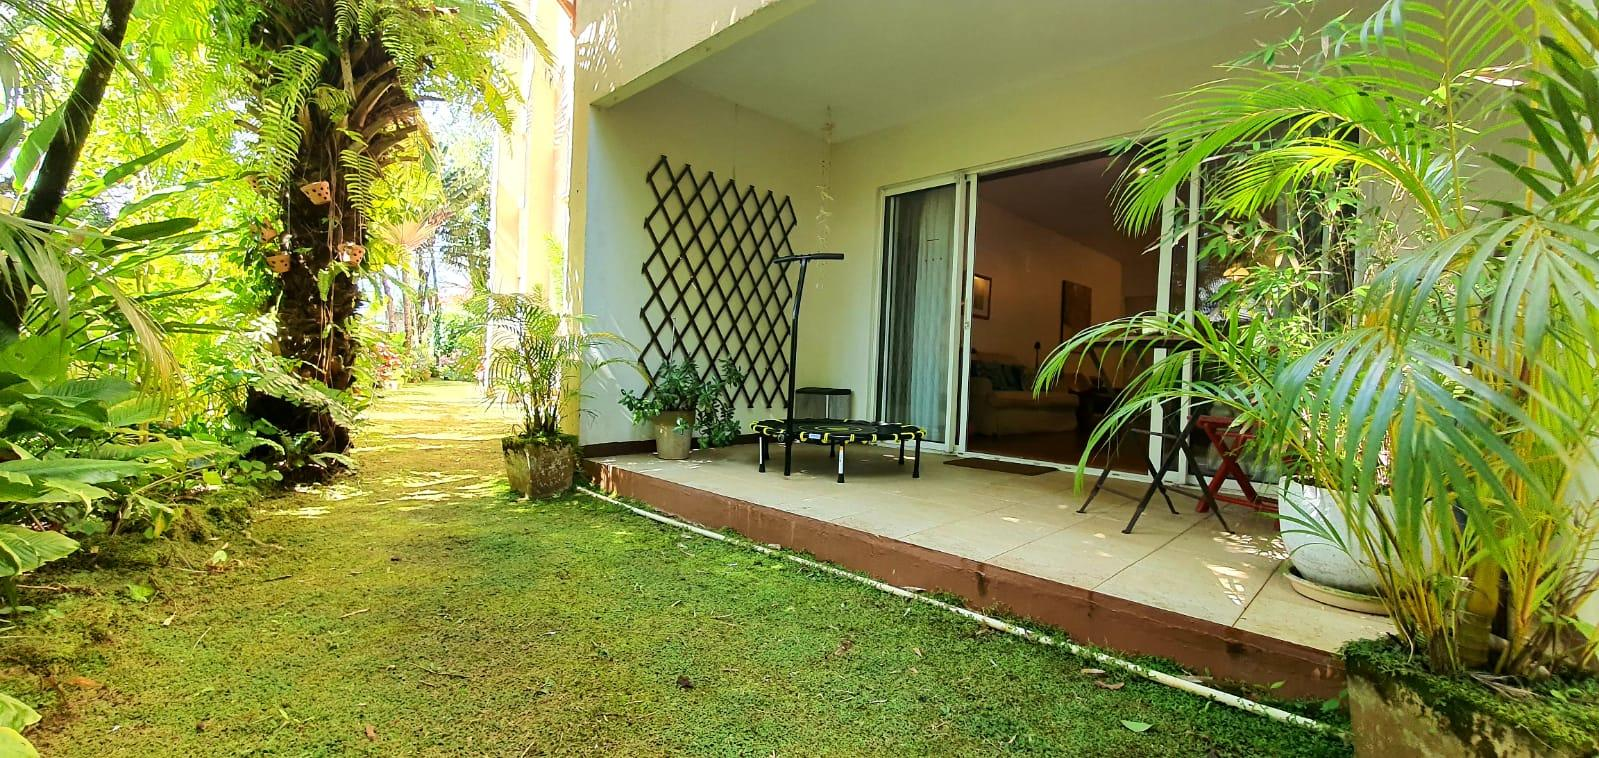 FOR SALE – Beautiful unfurnished apartment of 93.8 m2 is located at 5 minutes from the city center of Curepipe and at only 1 km from the shopping center So'Flo in Floréal.